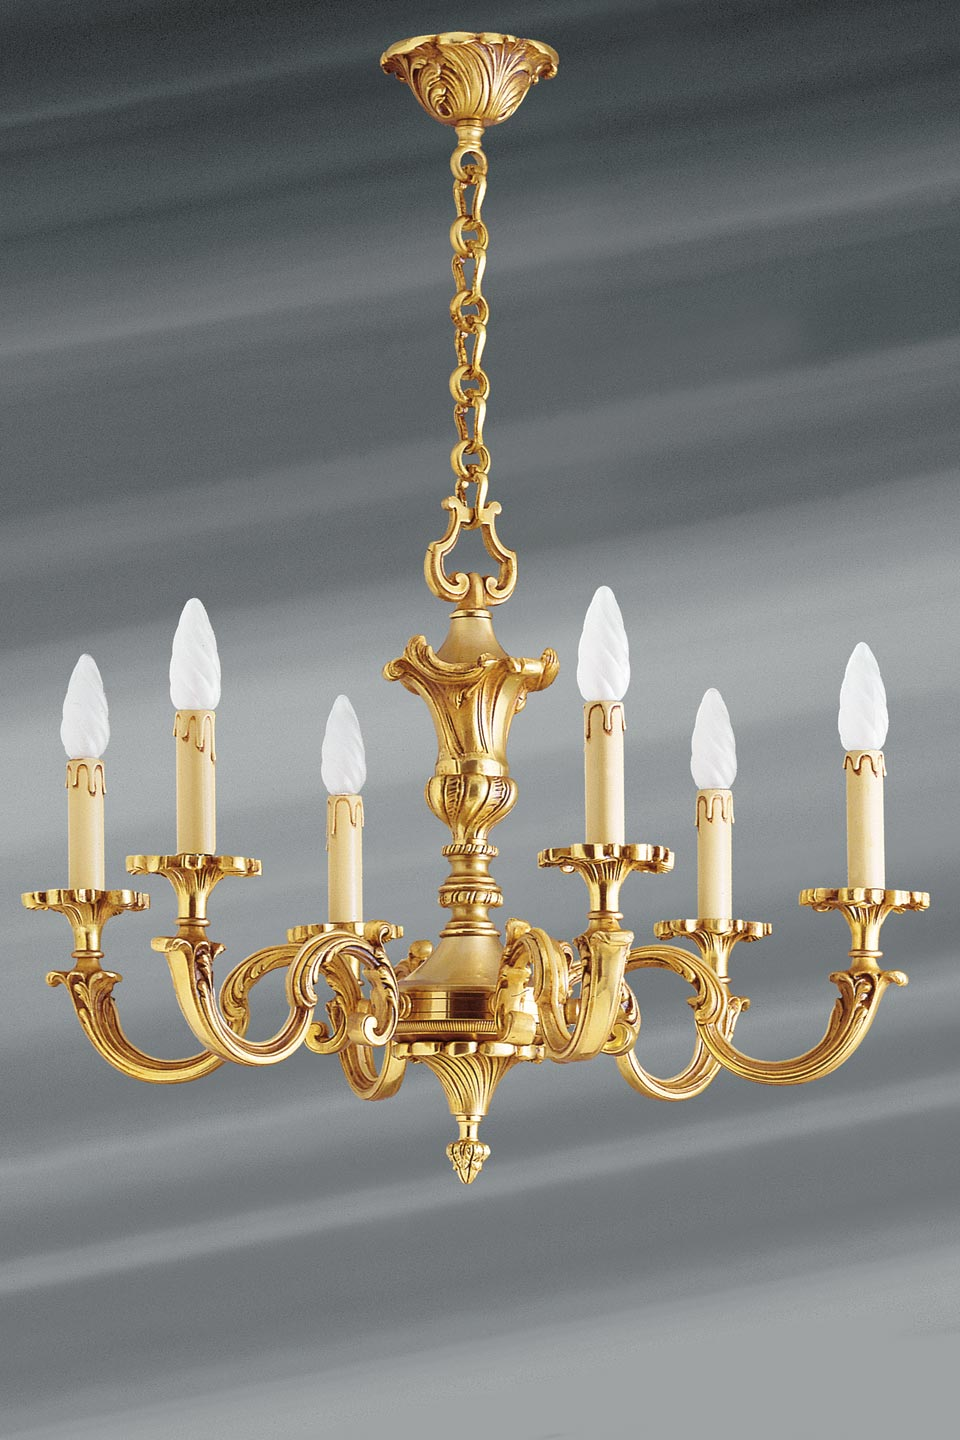 lustre six bougeoirs en bronze dor louis xv lucien gau luminaires classiques de prestige. Black Bedroom Furniture Sets. Home Design Ideas